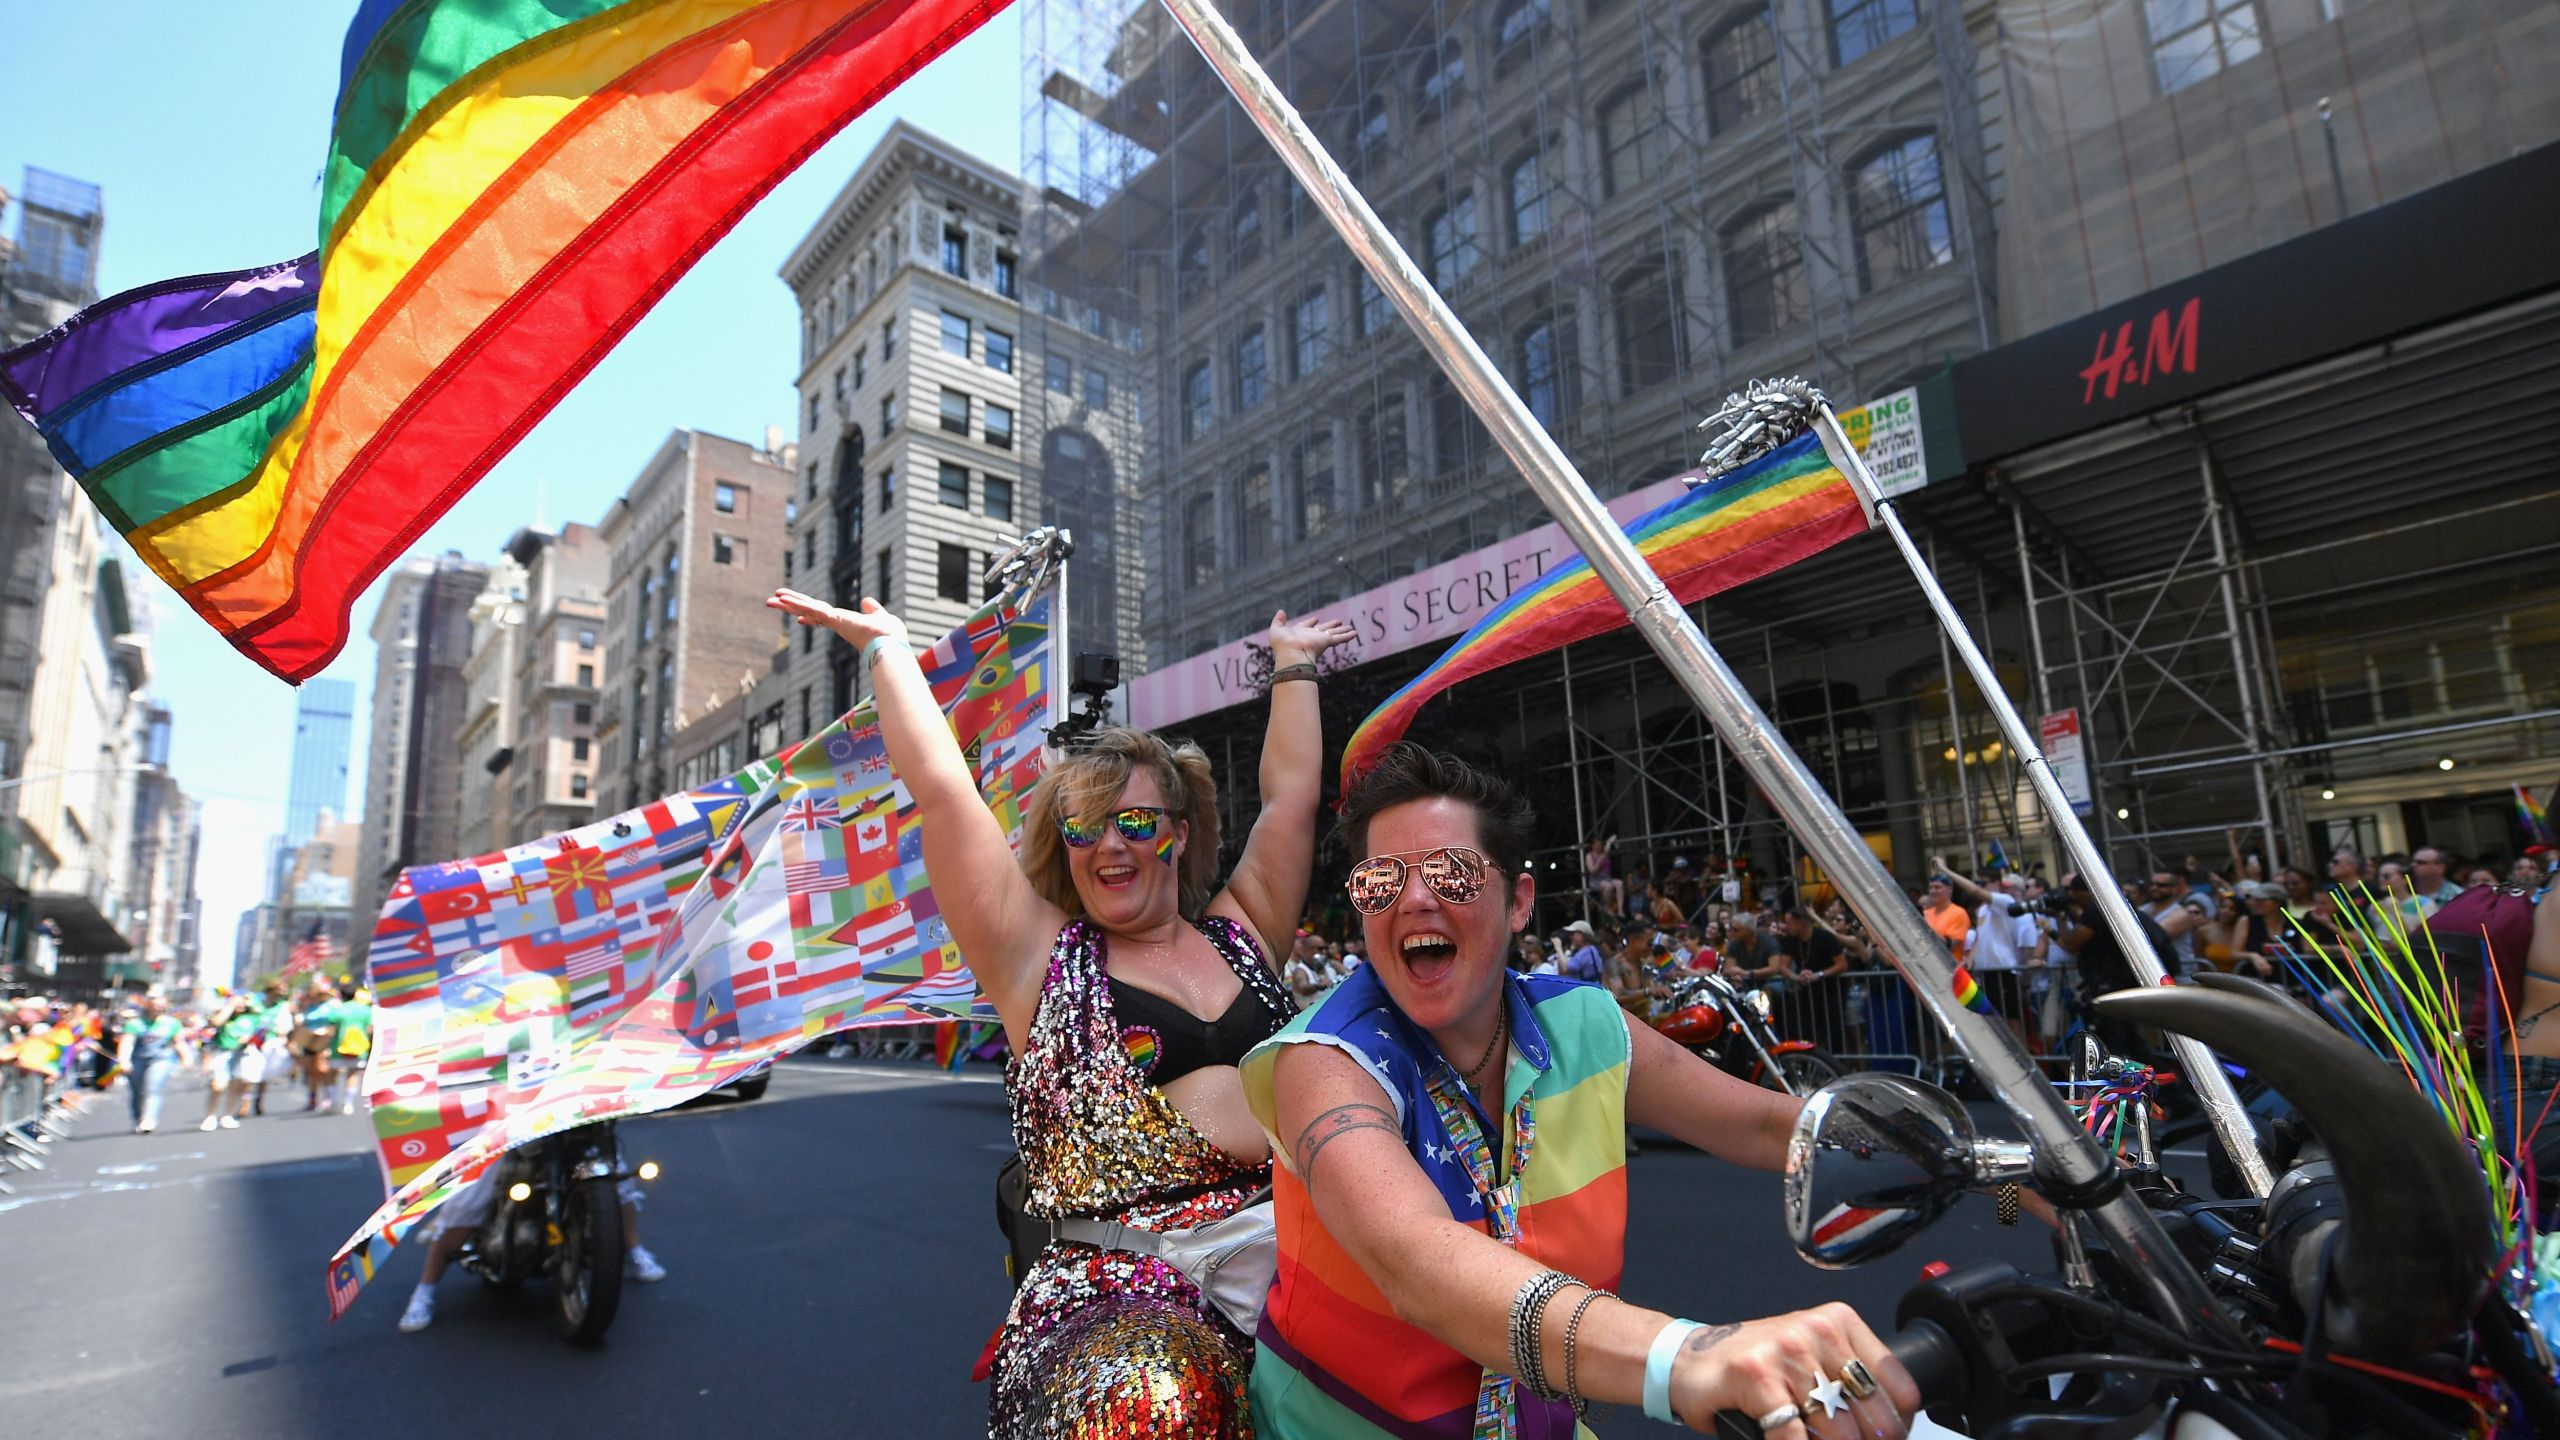 Participants take part in the NYC Pride March as part of World Pride commemorating the 50th Anniversary of the Stonewall Uprising on June 30, 2019, in New York City. (Credit: ANGELA WEISS / AFP/ Getty Images)